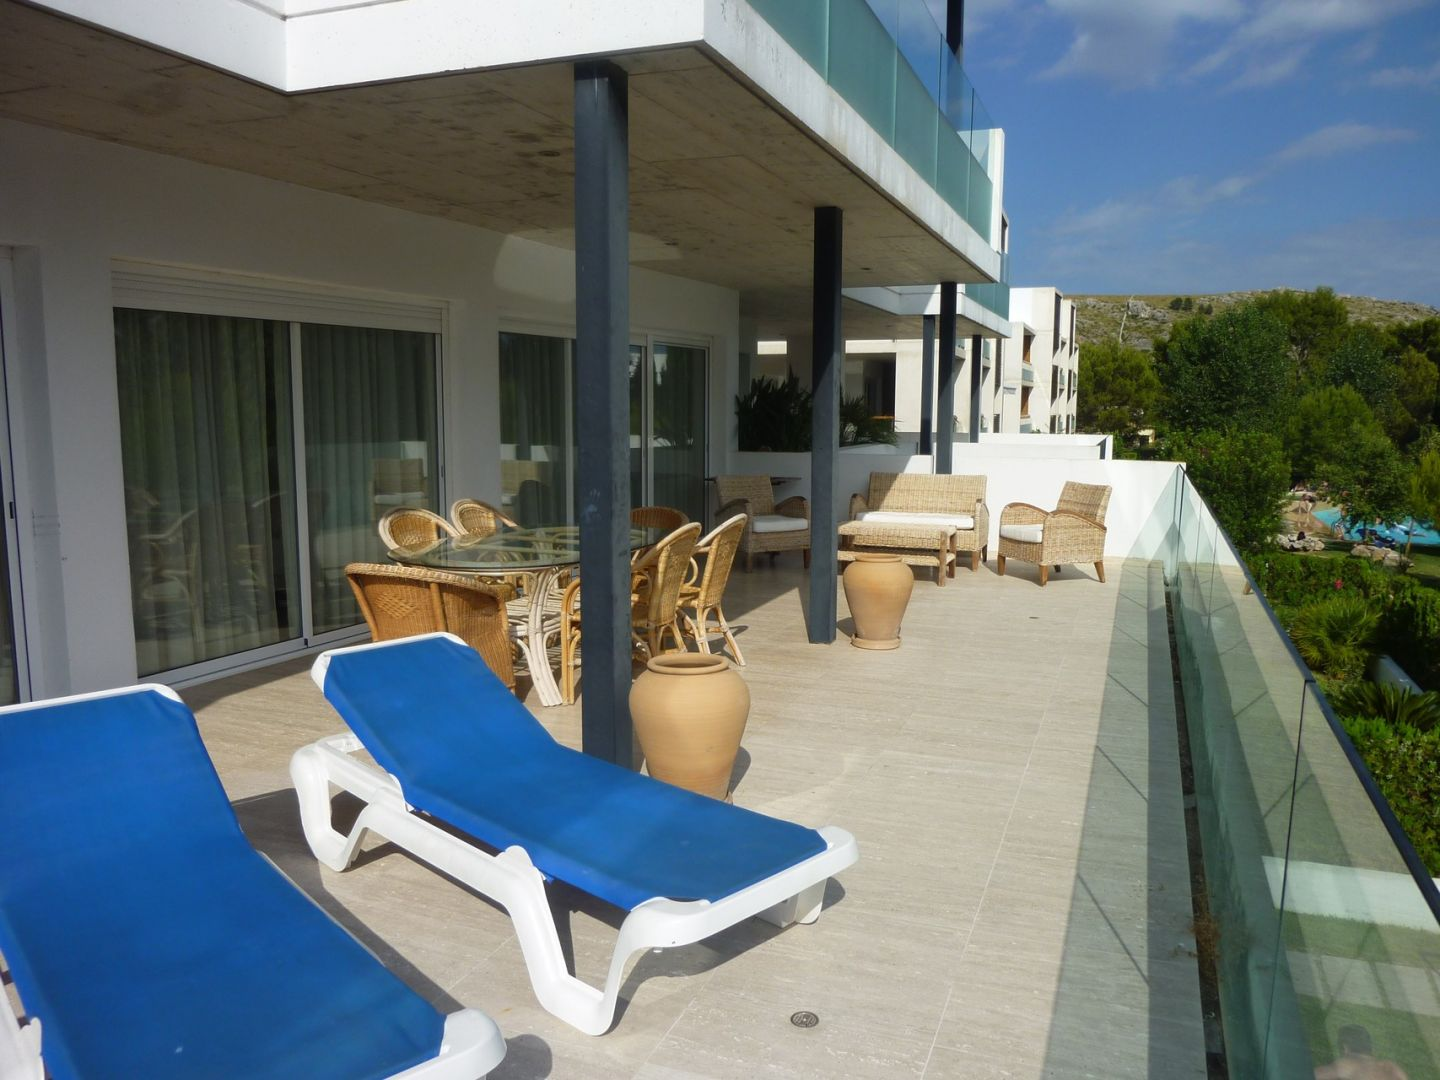 3 Bed Apartment for sale in PUERTO POLLENSA 5